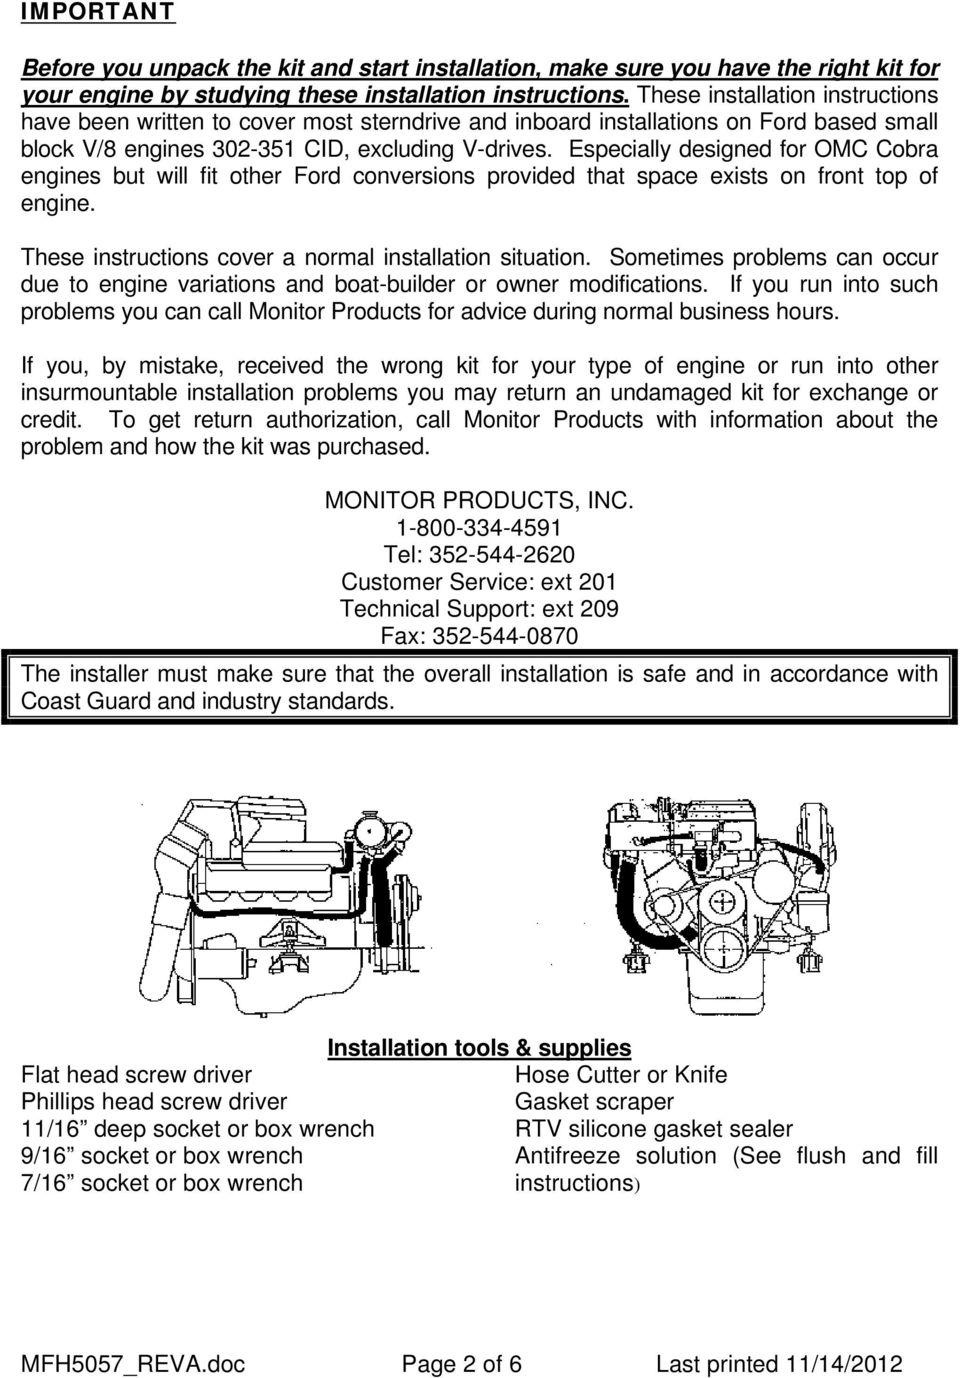 MFH-5057 Ford Small-Block V-8 Fresh Water Cooling Kit Instructions - PDF